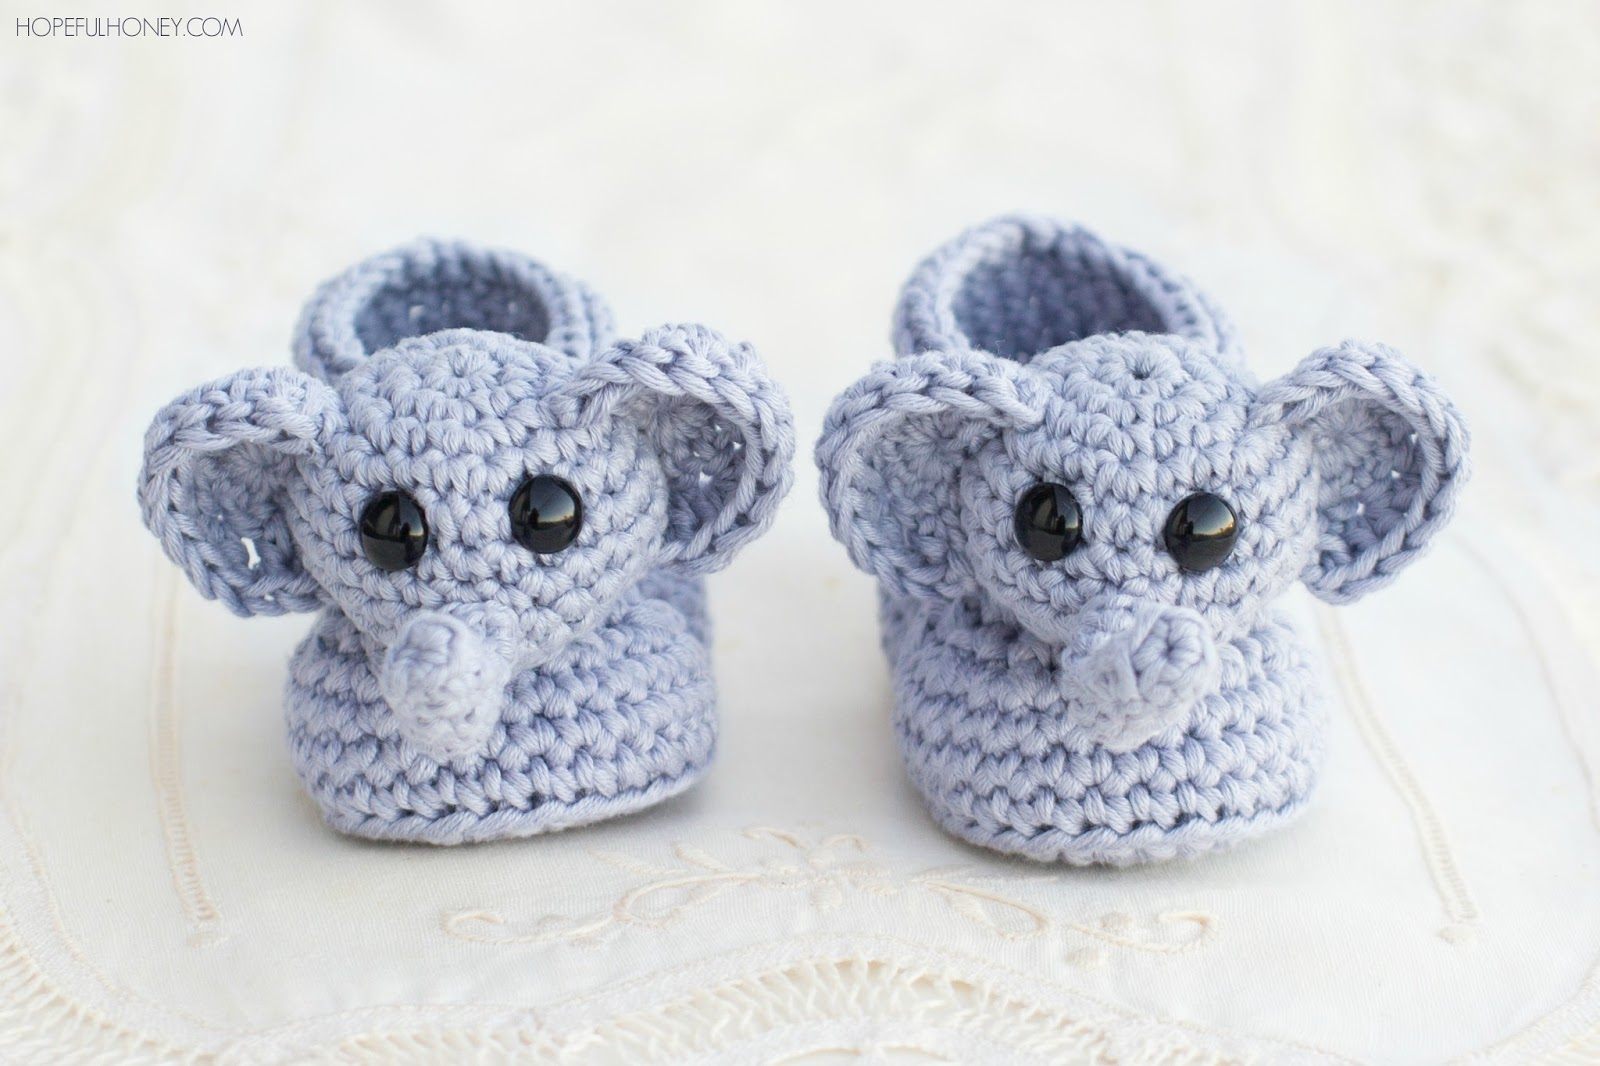 Crochet Baby Booties Written Pattern : Hopeful Honey Craft, Crochet, Create: Ellie The Elephant ...